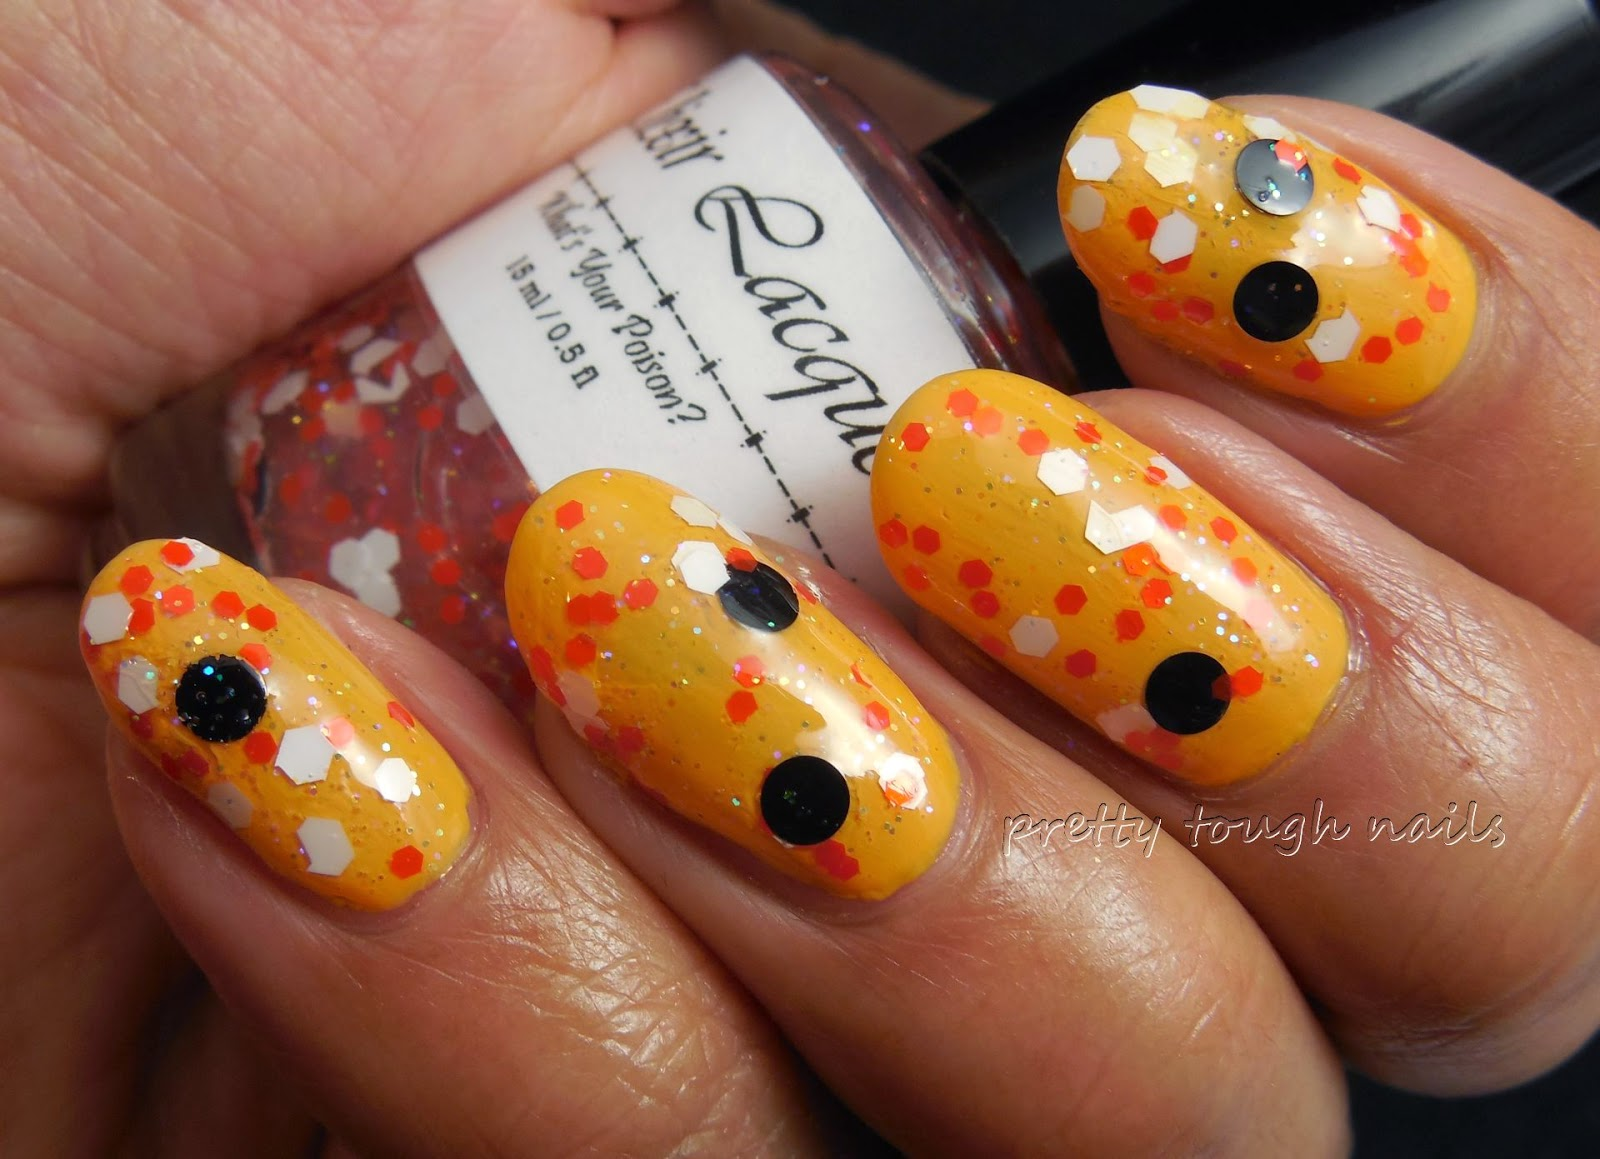 Elixir Lacquers Snowman Suite Over American Apparel Manila